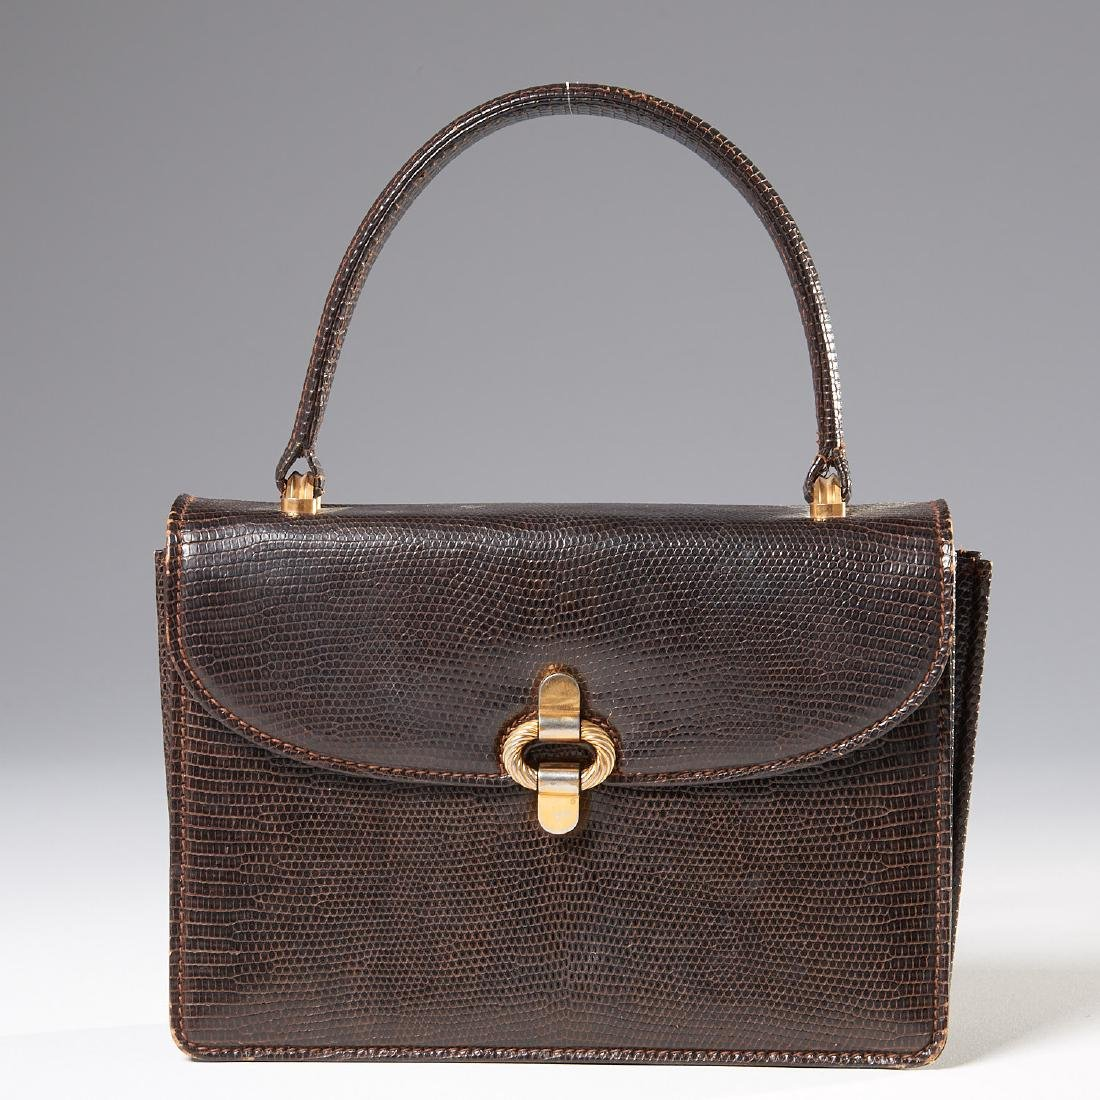 Gucci brown lizard handbag